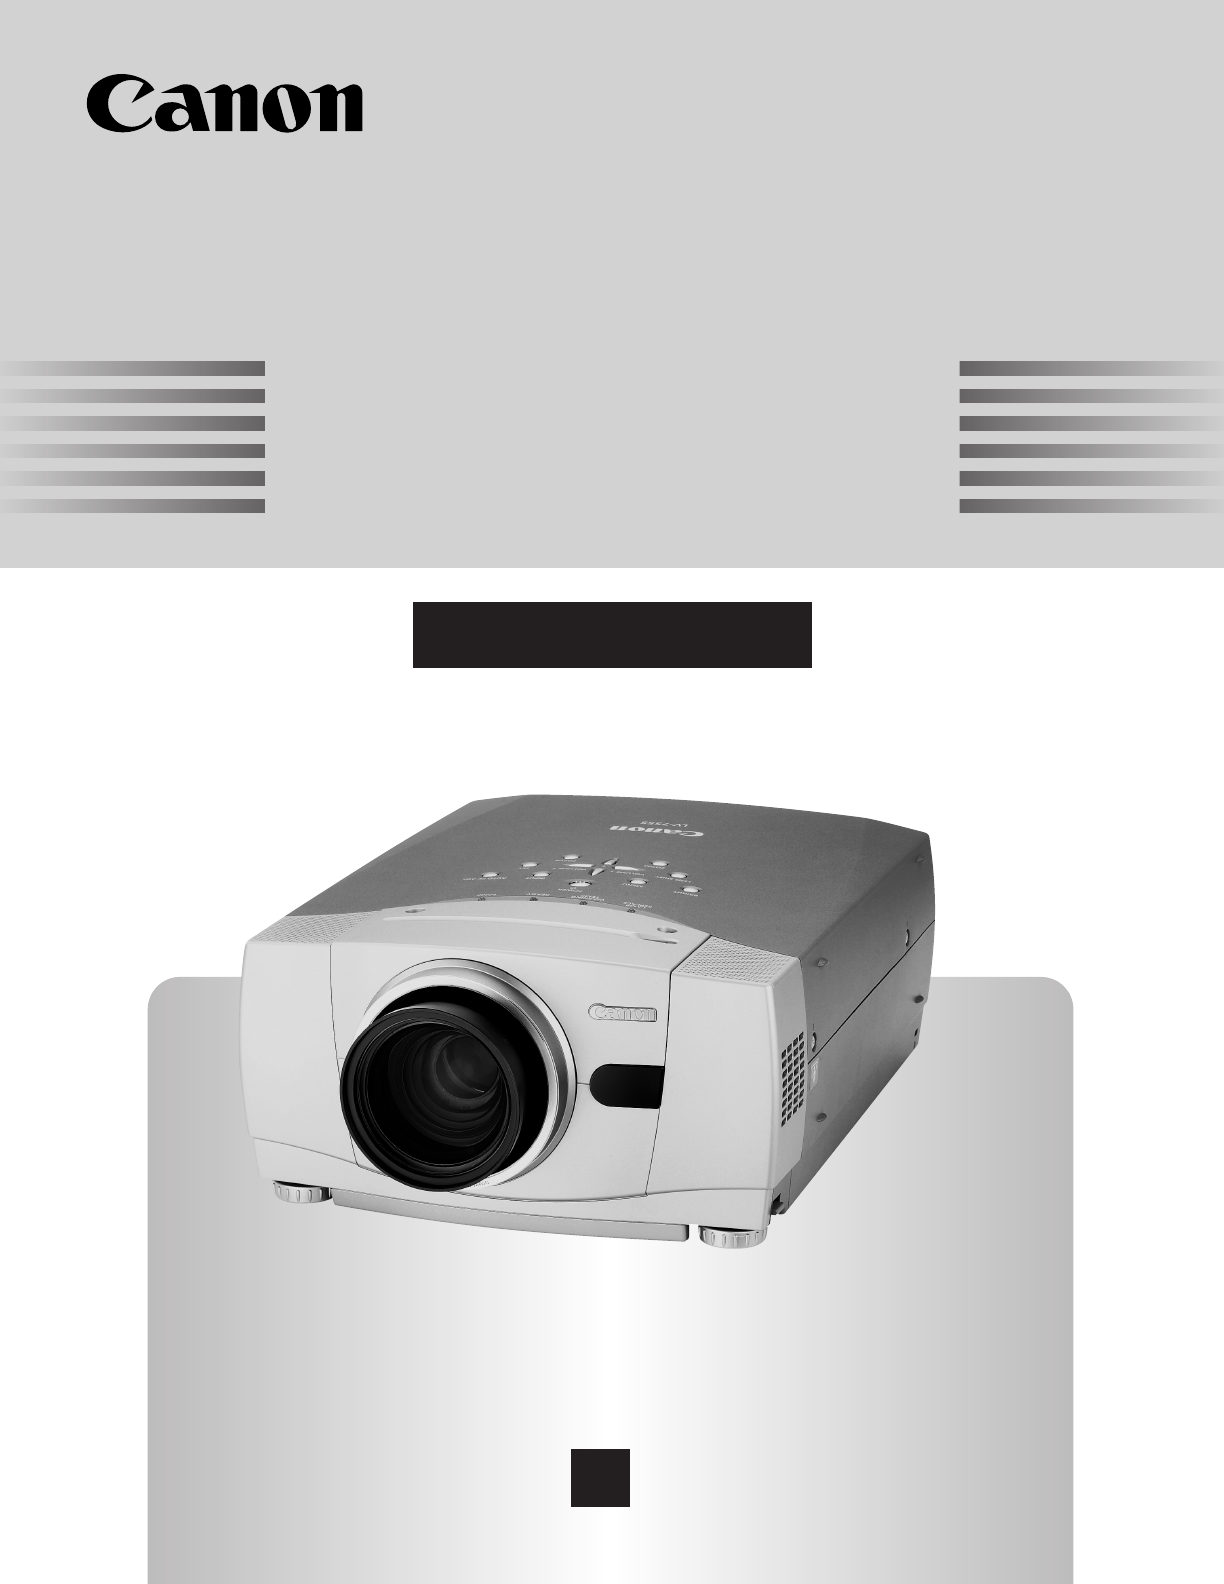 E. English. Multimedia Projector. Owner's Manual